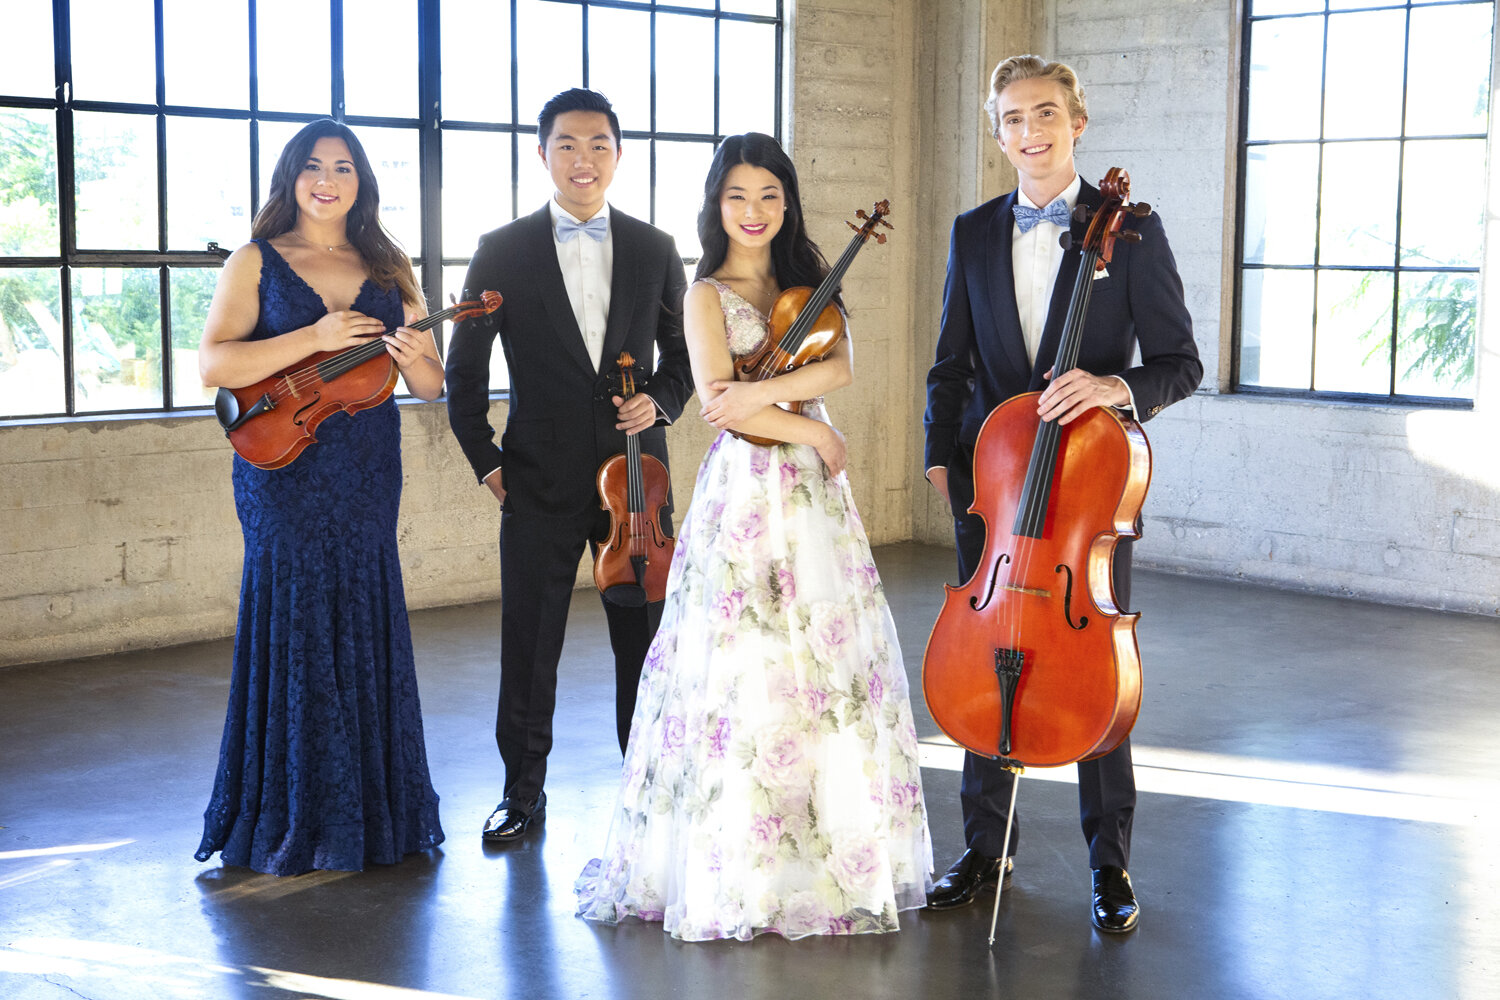 Viano String Quartet, co-winners of the 2019 Banff International String Quartet Competition.